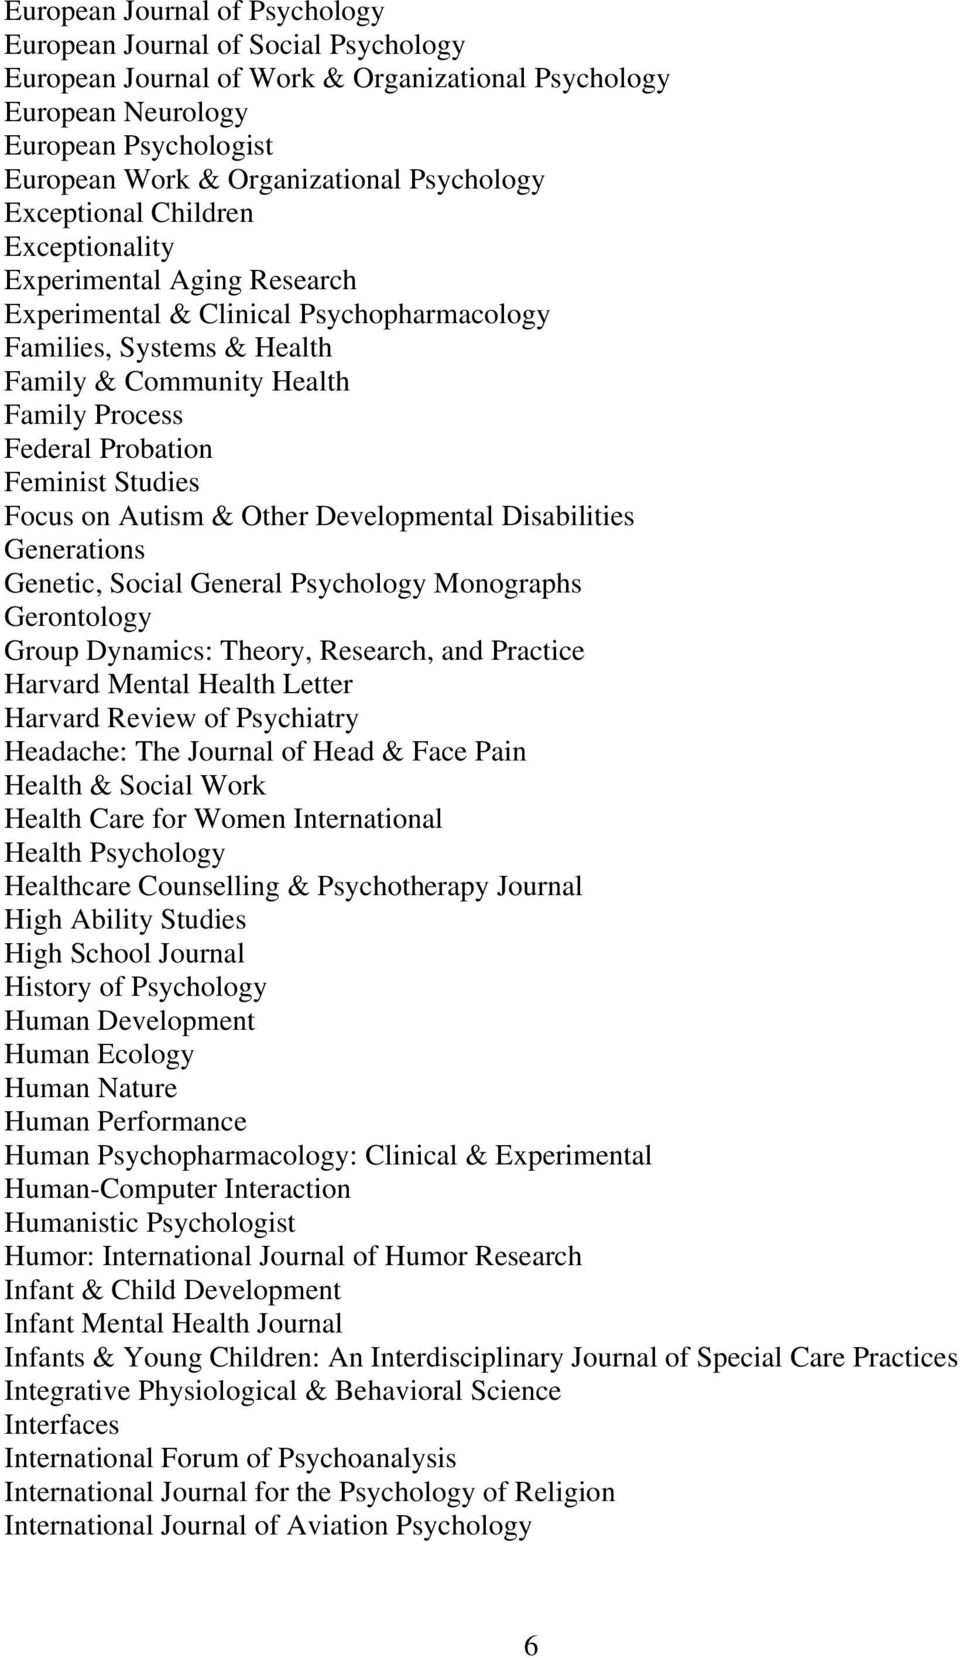 Probation Feminist Studies Focus on Autism & Other Developmental Disabilities Generations Genetic, Social General Psychology Monographs Gerontology Group Dynamics: Theory, Research, and Practice